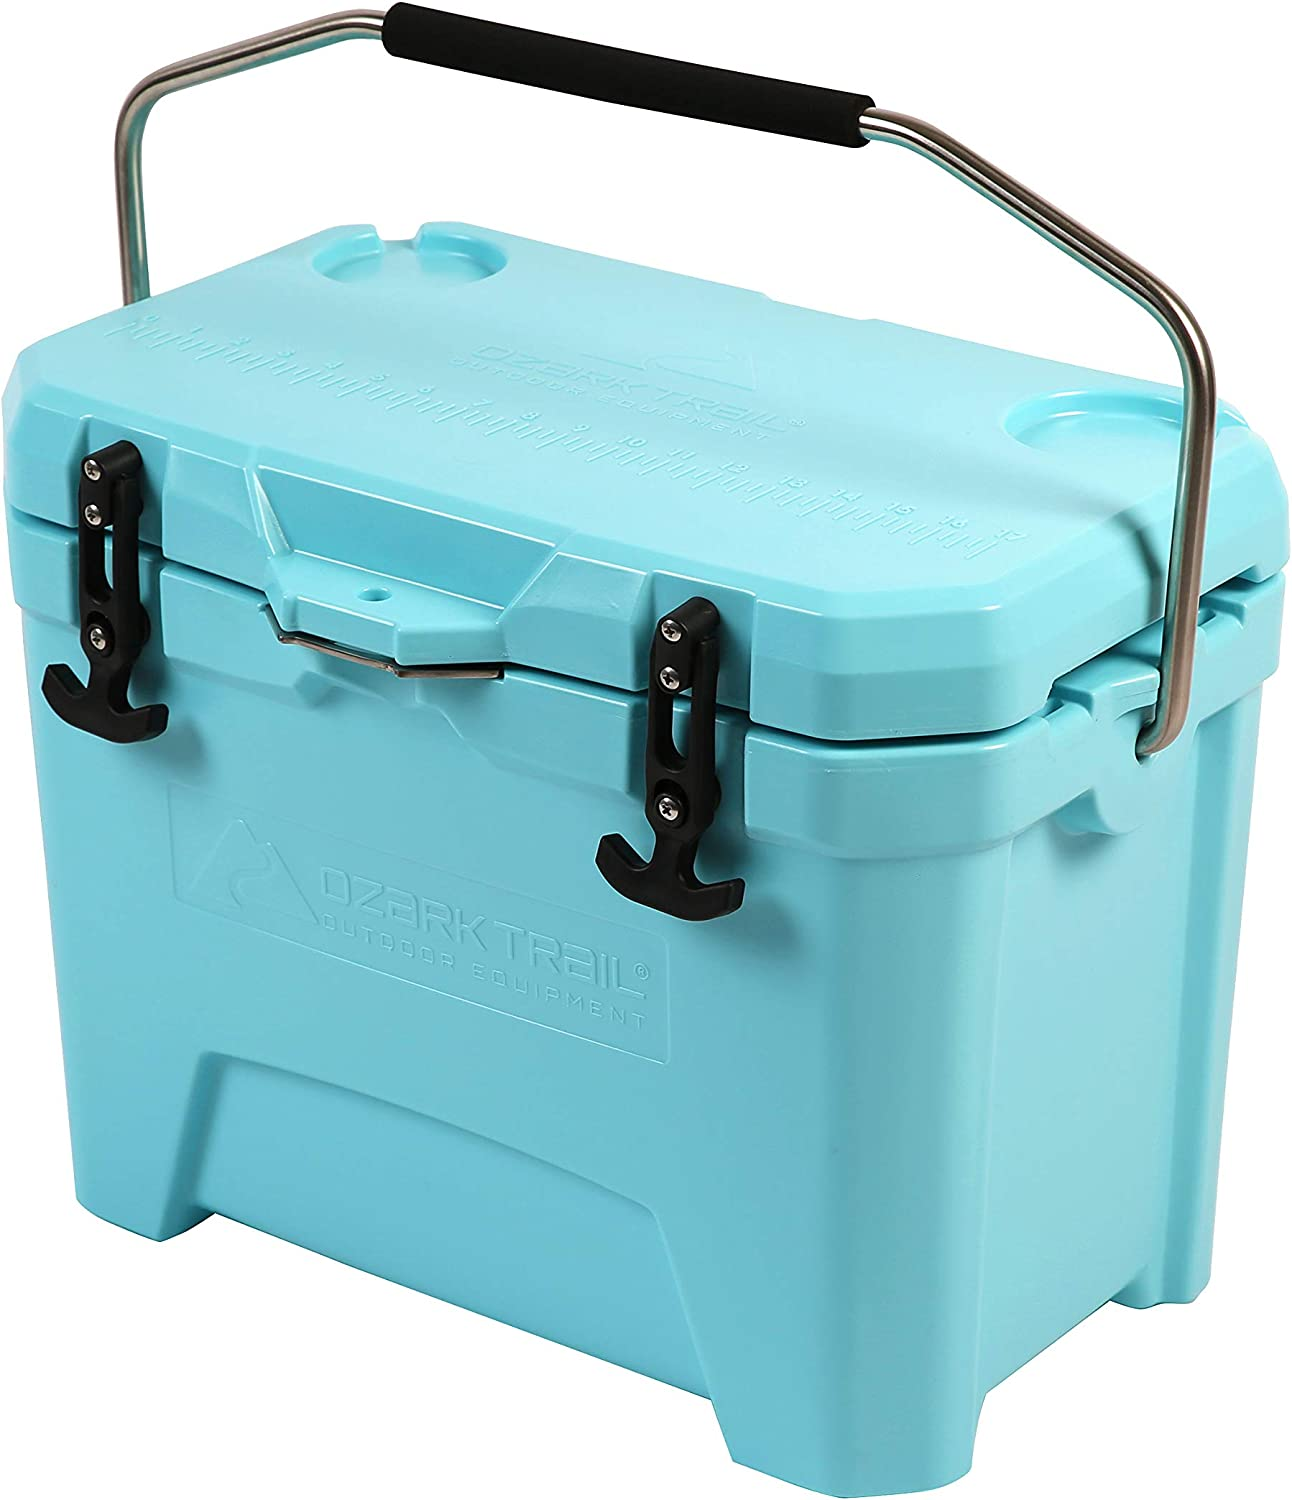 NEW Blue Ozark Trail 26-Quart High-Performance Chest Cooler Insulated